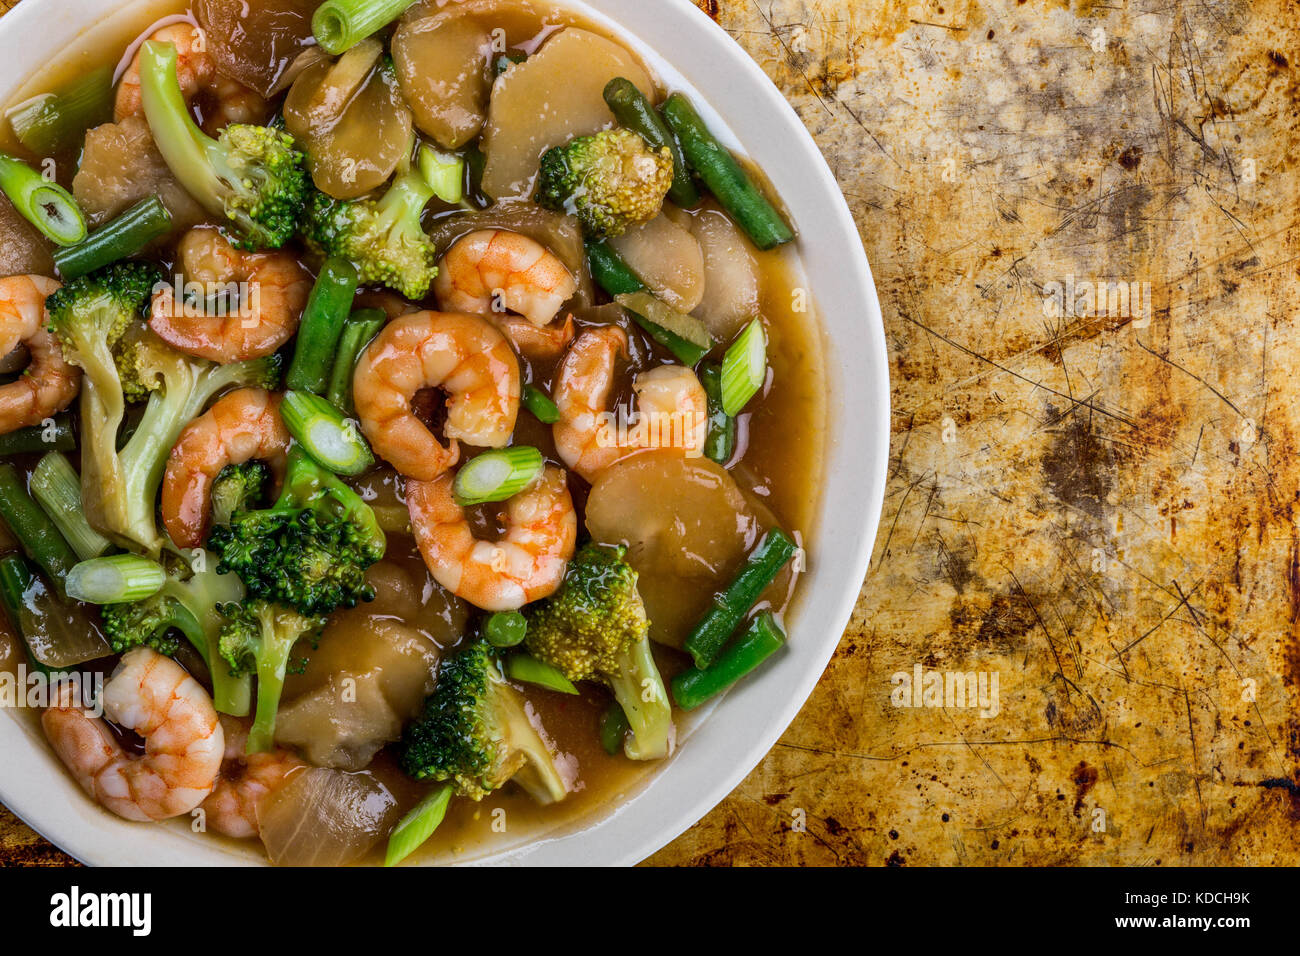 Chinese Style Stir Fried King Prawn With Ginger and Spring Onions On A Distressed Oven or Baking Tray - Stock Image